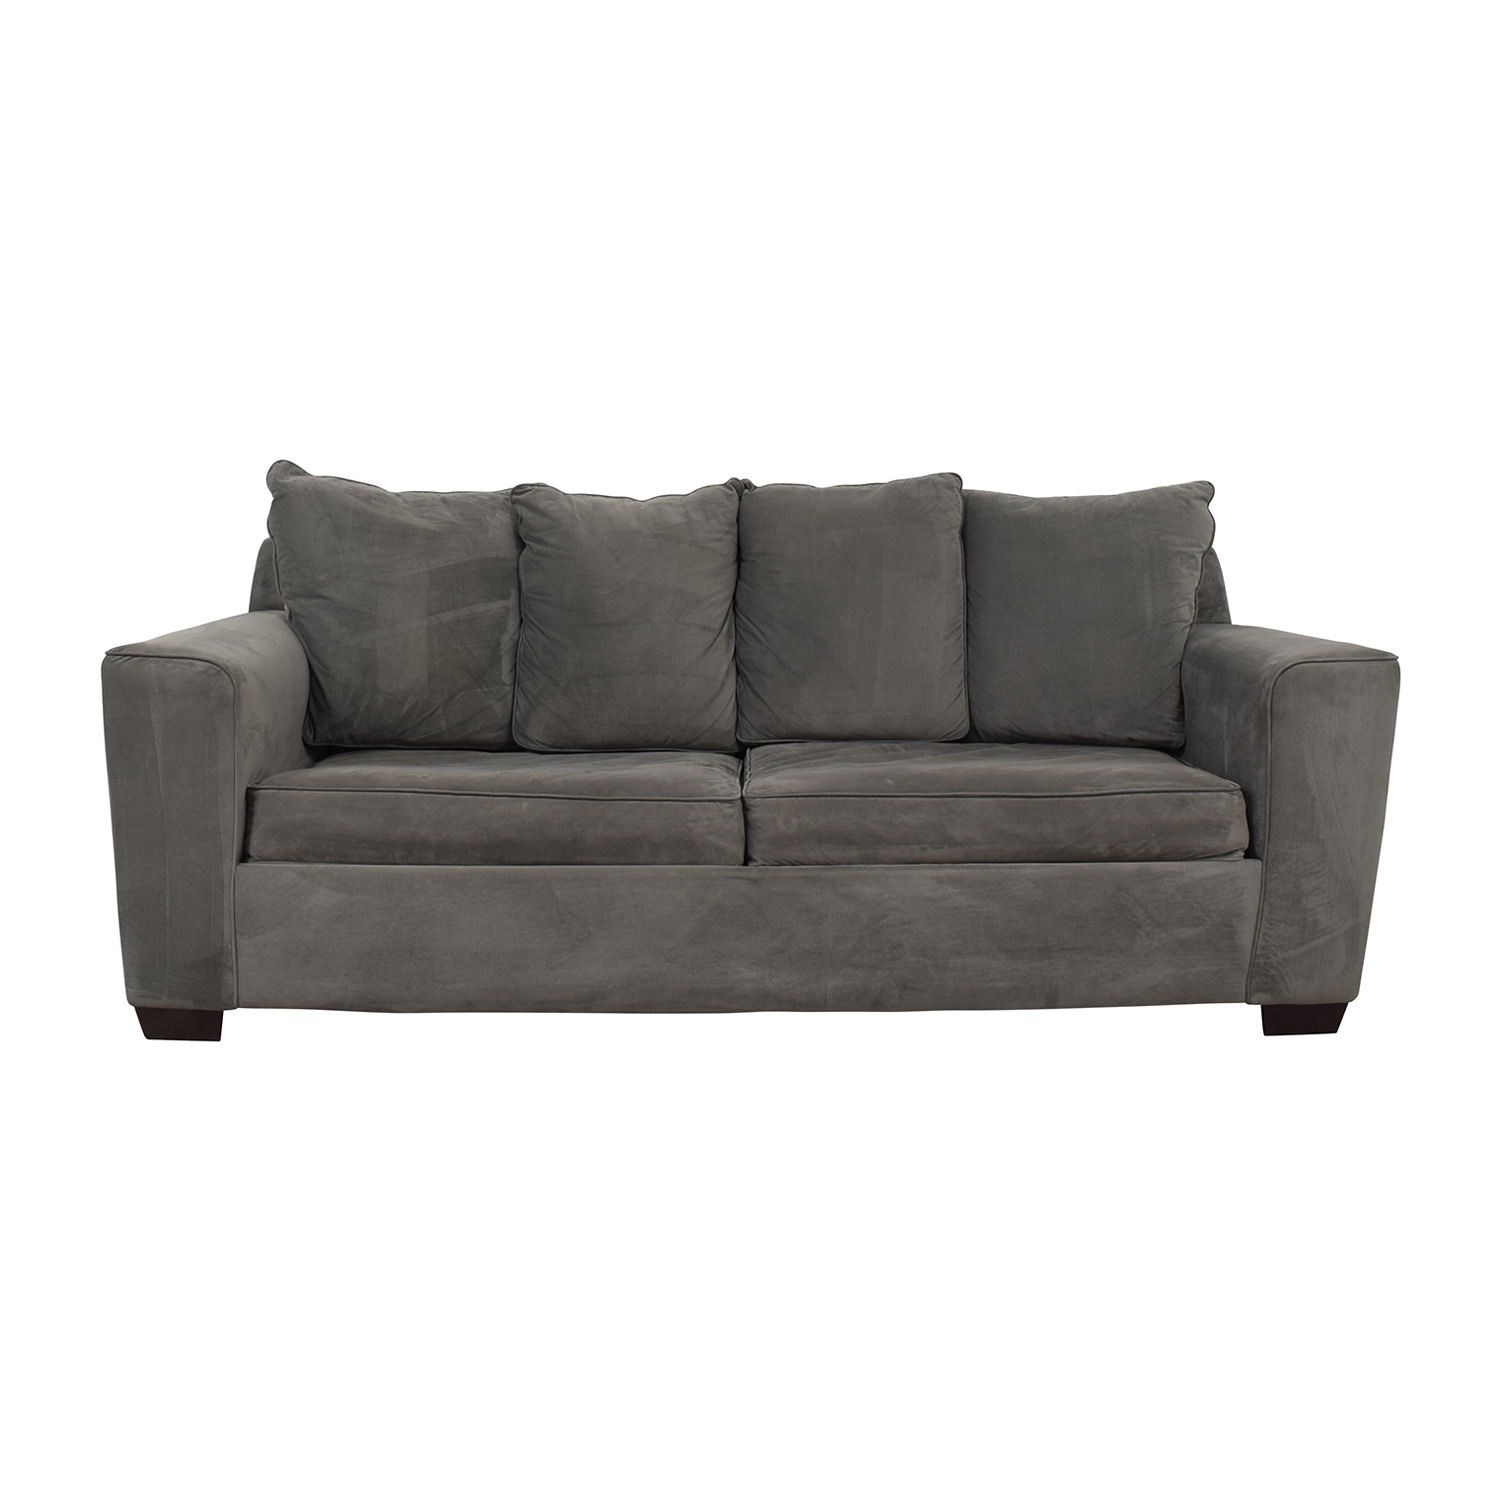 Jennifer Furniture Grey Sofa with Queen Pullout Convertible Jennifer Furniture